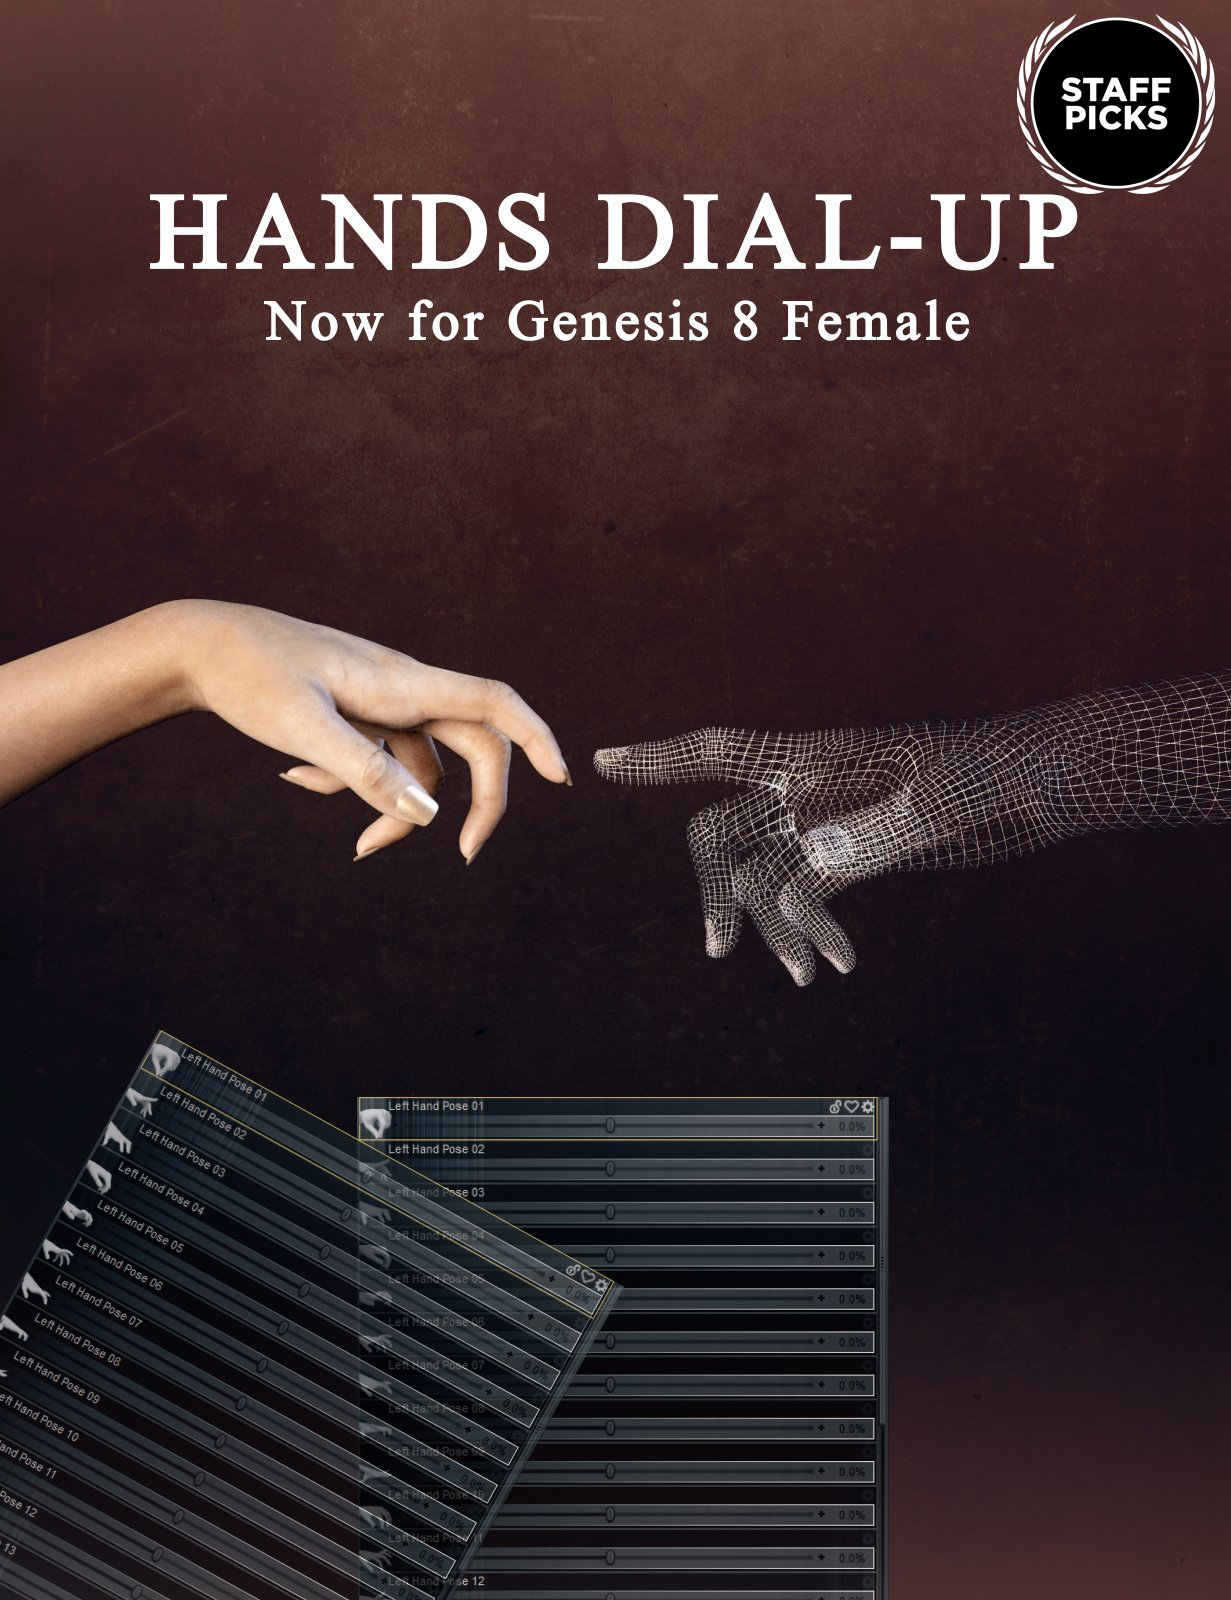 Hands Dial-up for Genesis 8 Female by: Neikdian, 3D Models by Daz 3D